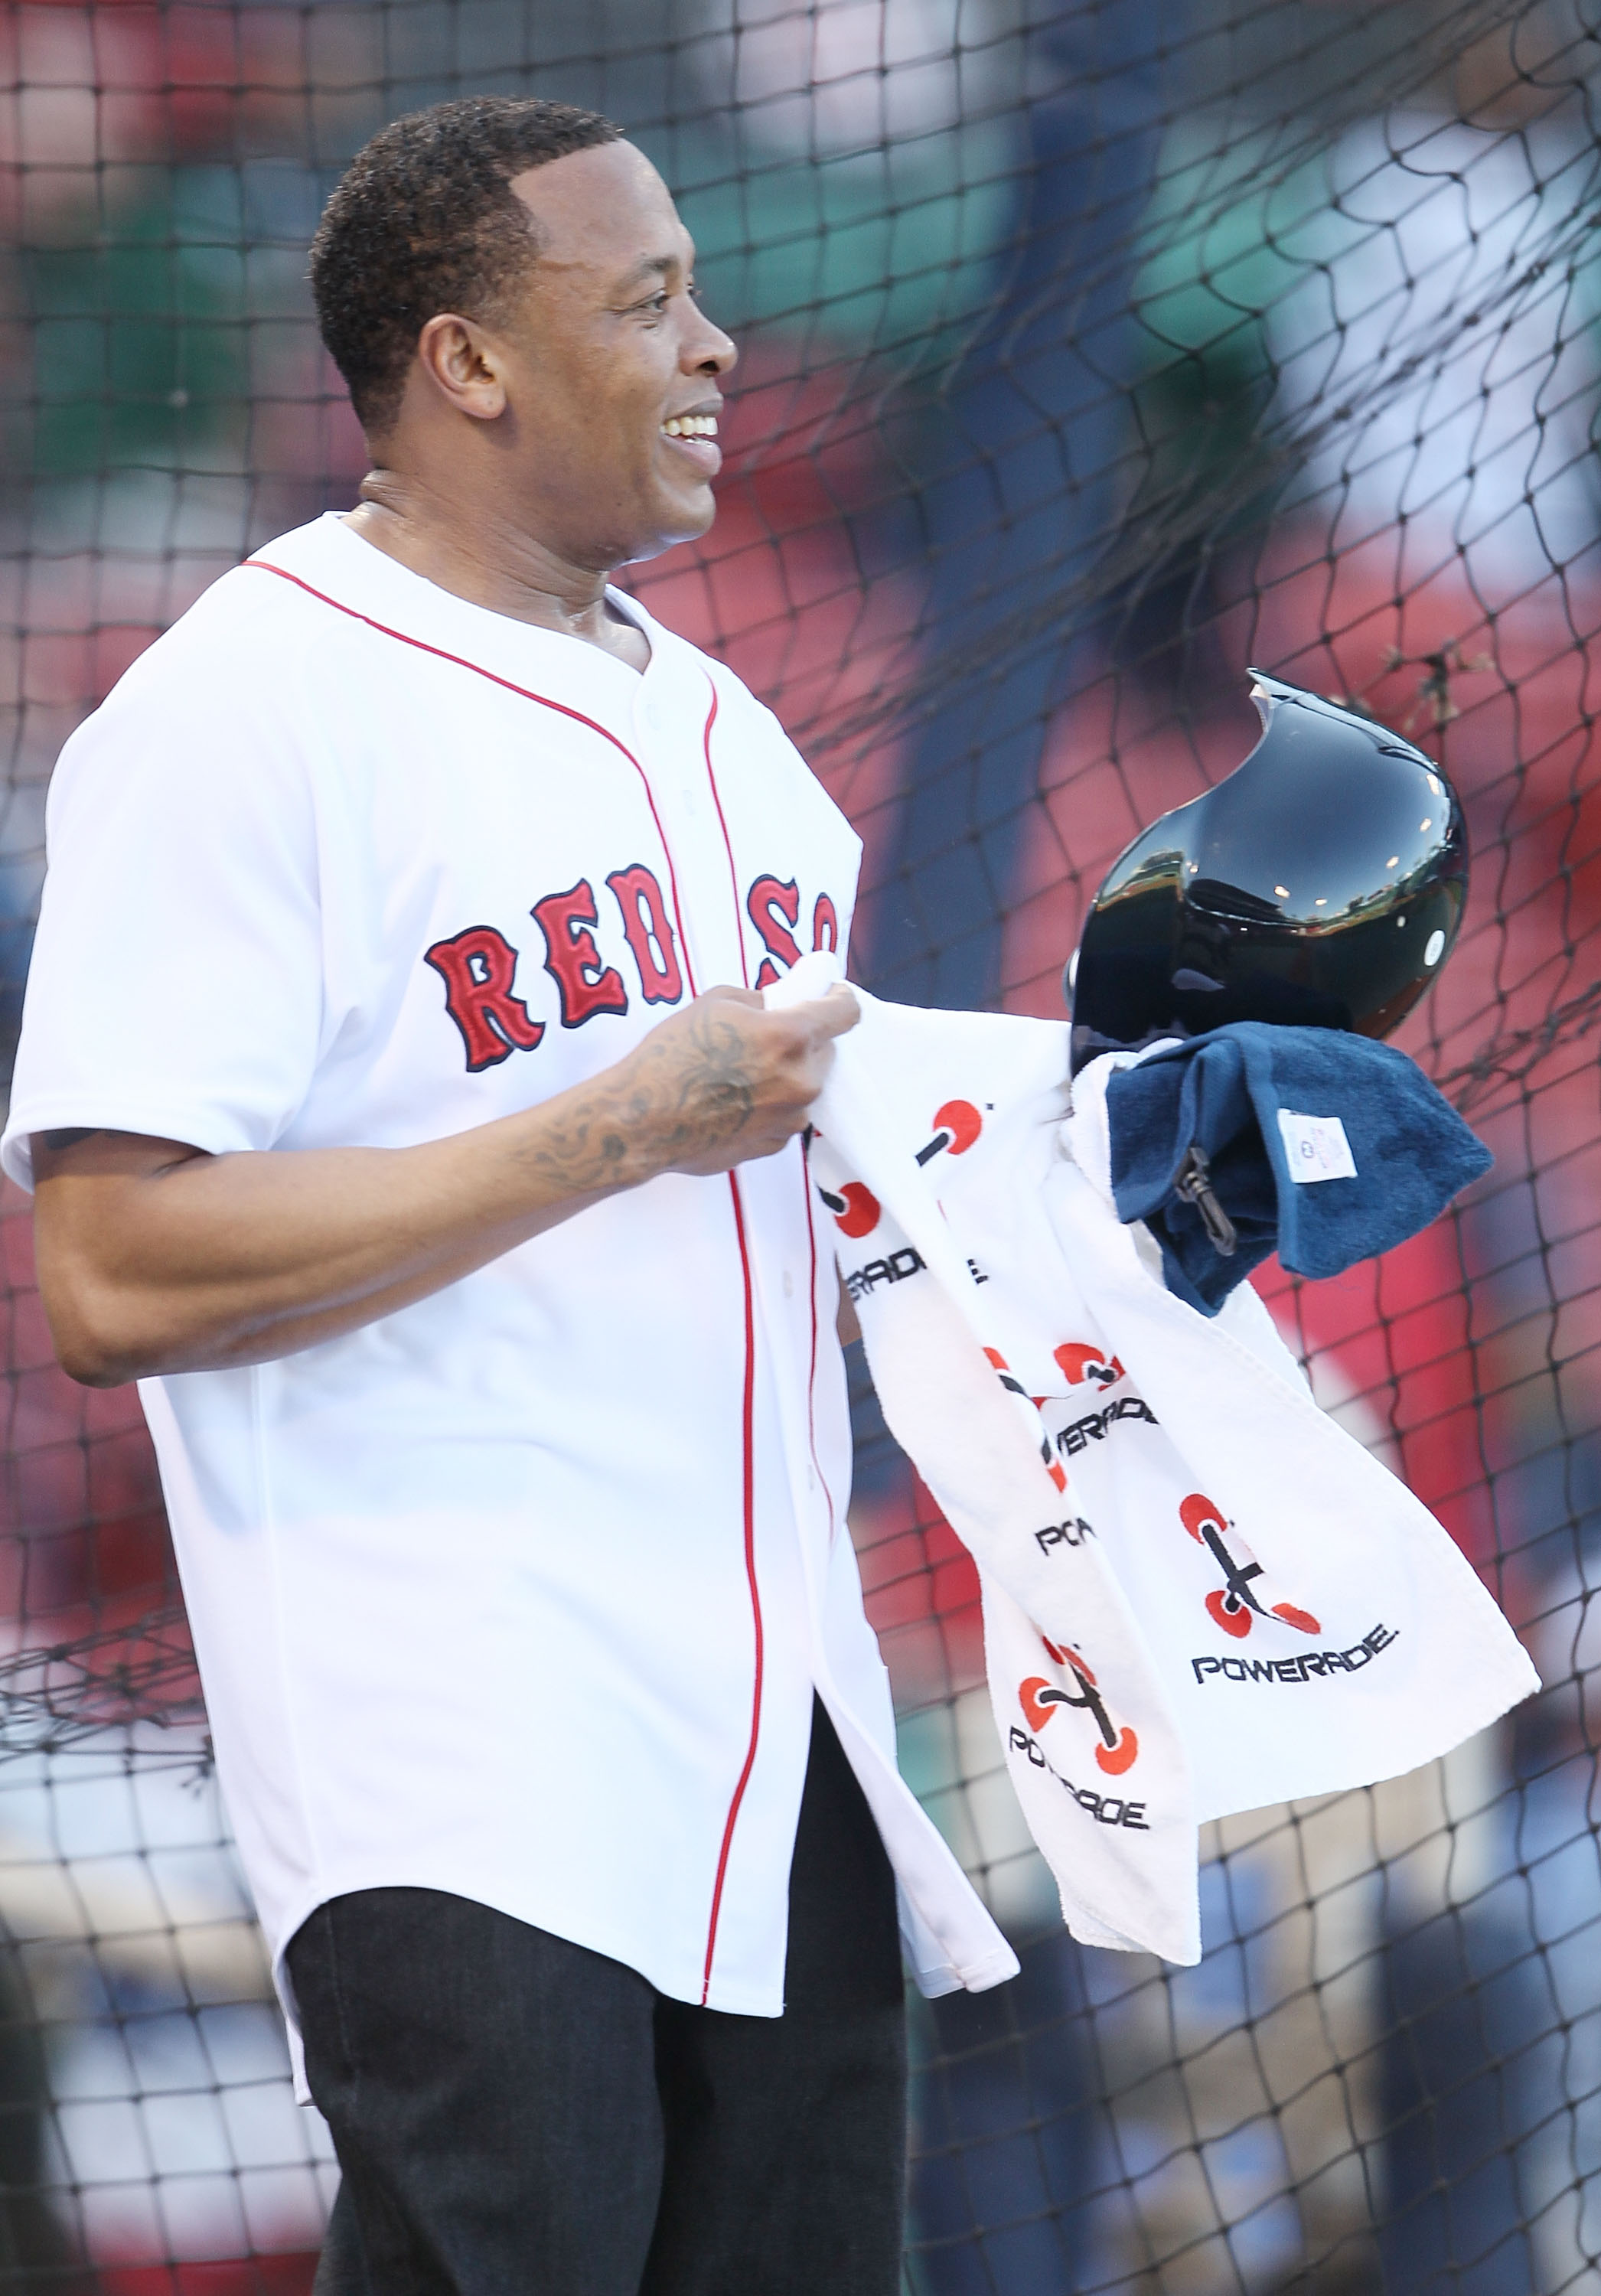 BOSTON - APRIL 04:  Producer and musician Dr. Dre takes batting practice before the Boston Red Sox  take on the the New York Yankees on April 4, 2010 during Opening Night at Fenway Park in Boston, Massachusetts. Dre was in to promote the Boston Red Sox ve